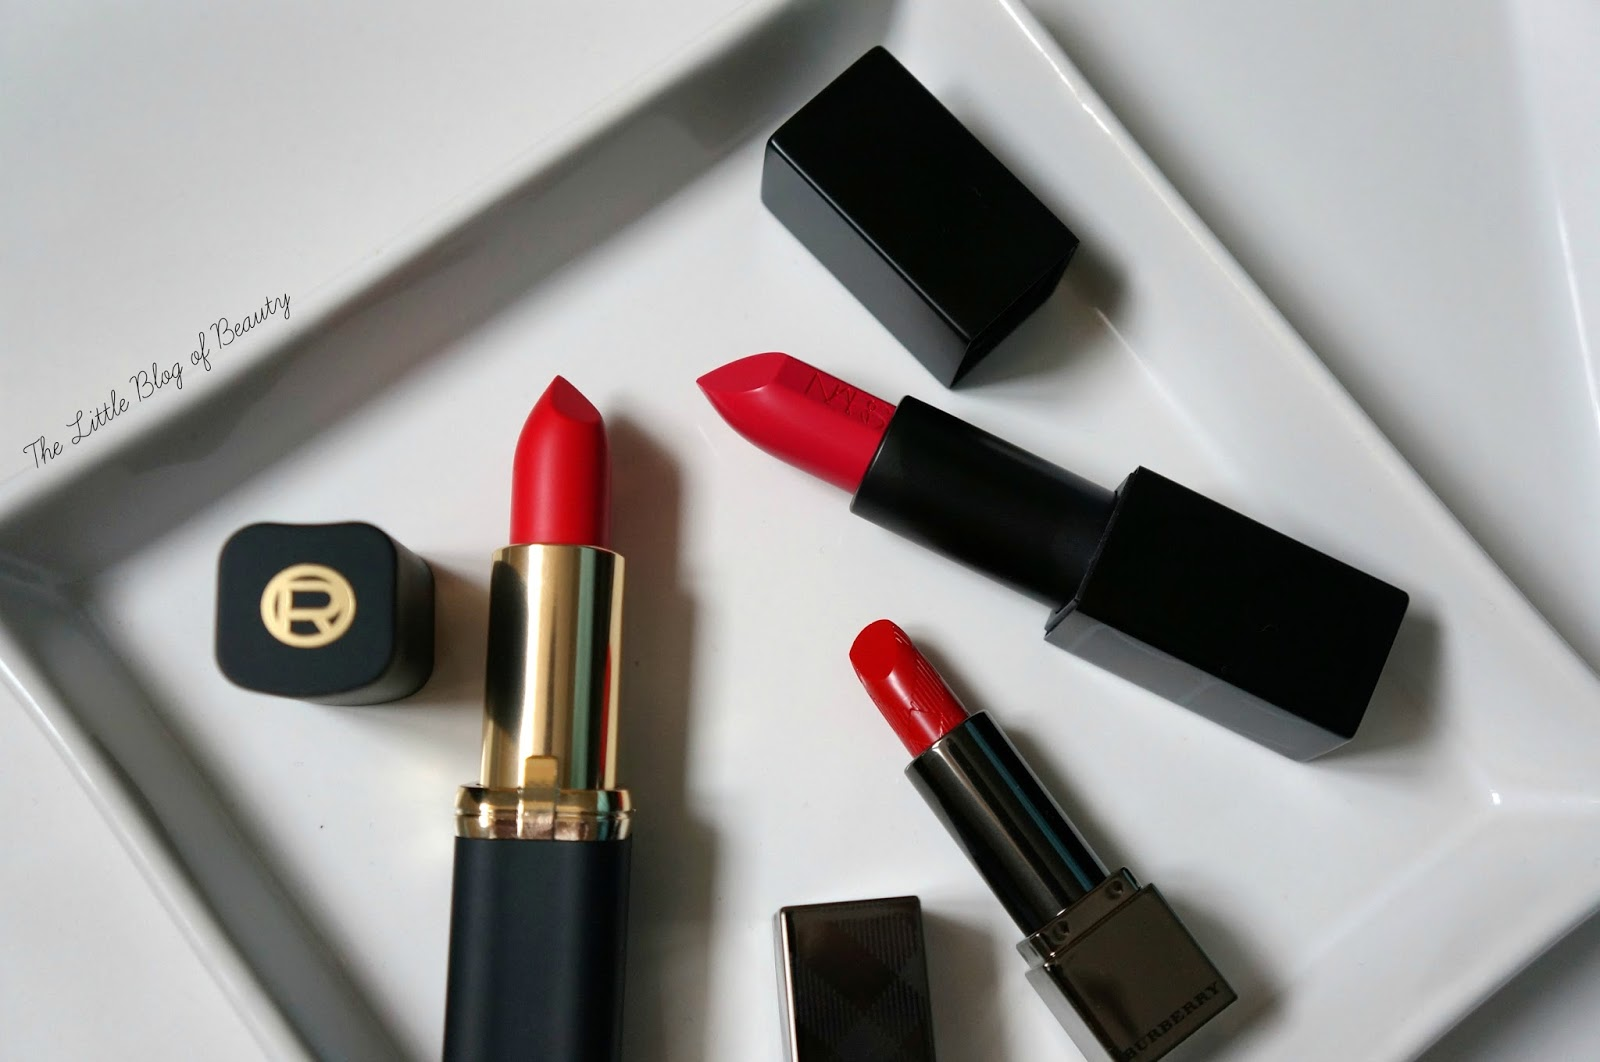 NARS Audacious Greta, L'Oreal Collection Exclusive Pure red by Julianne and Burberry Kisses in Military red